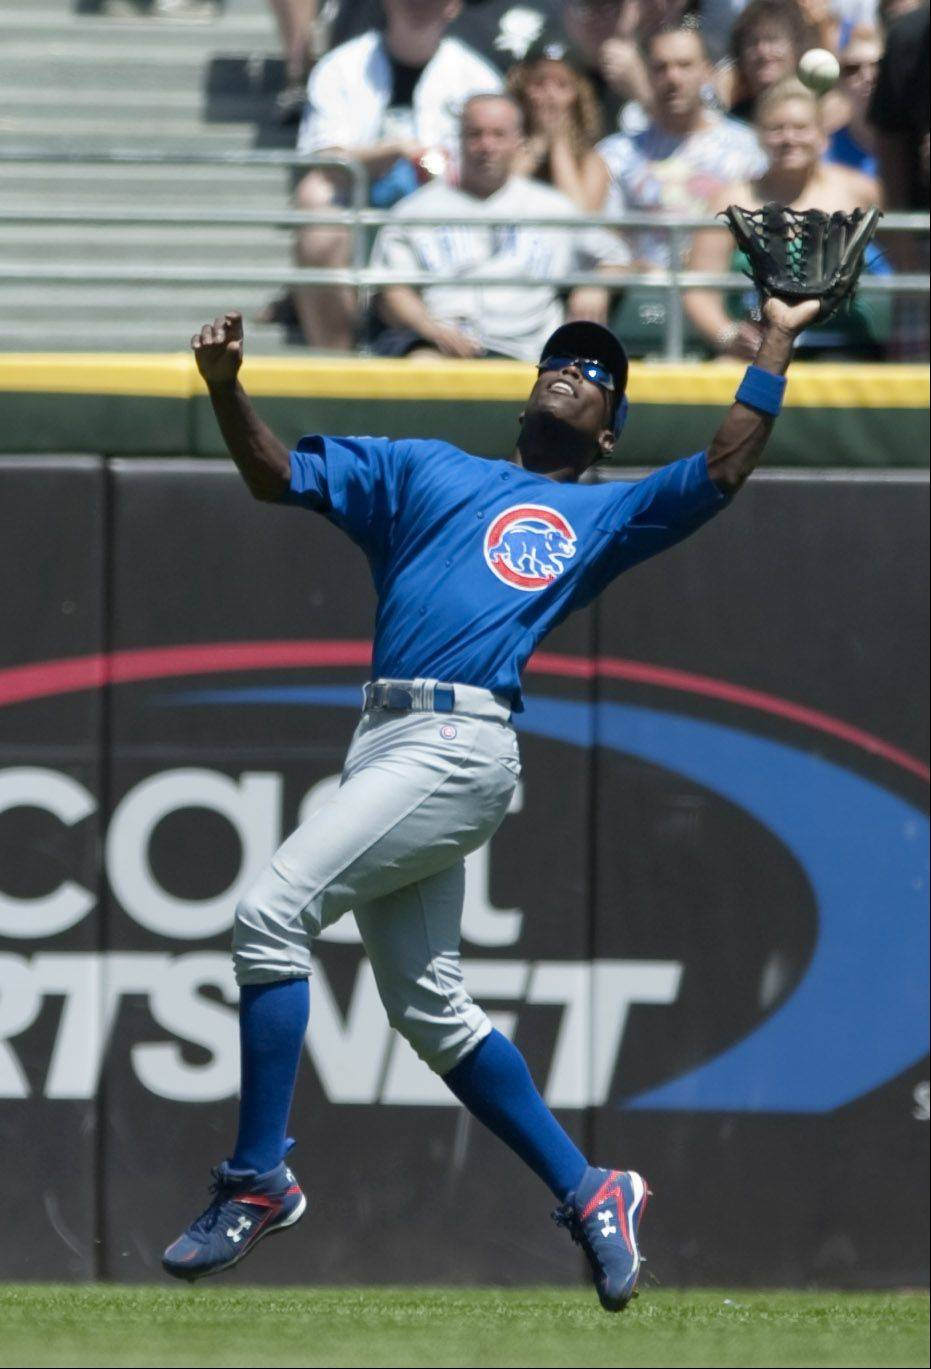 Cubs left fielder Alfonso Soriano catches a flyball during the third inning against the Sox at U.S. Cellular Field on Sunday in Chicago.